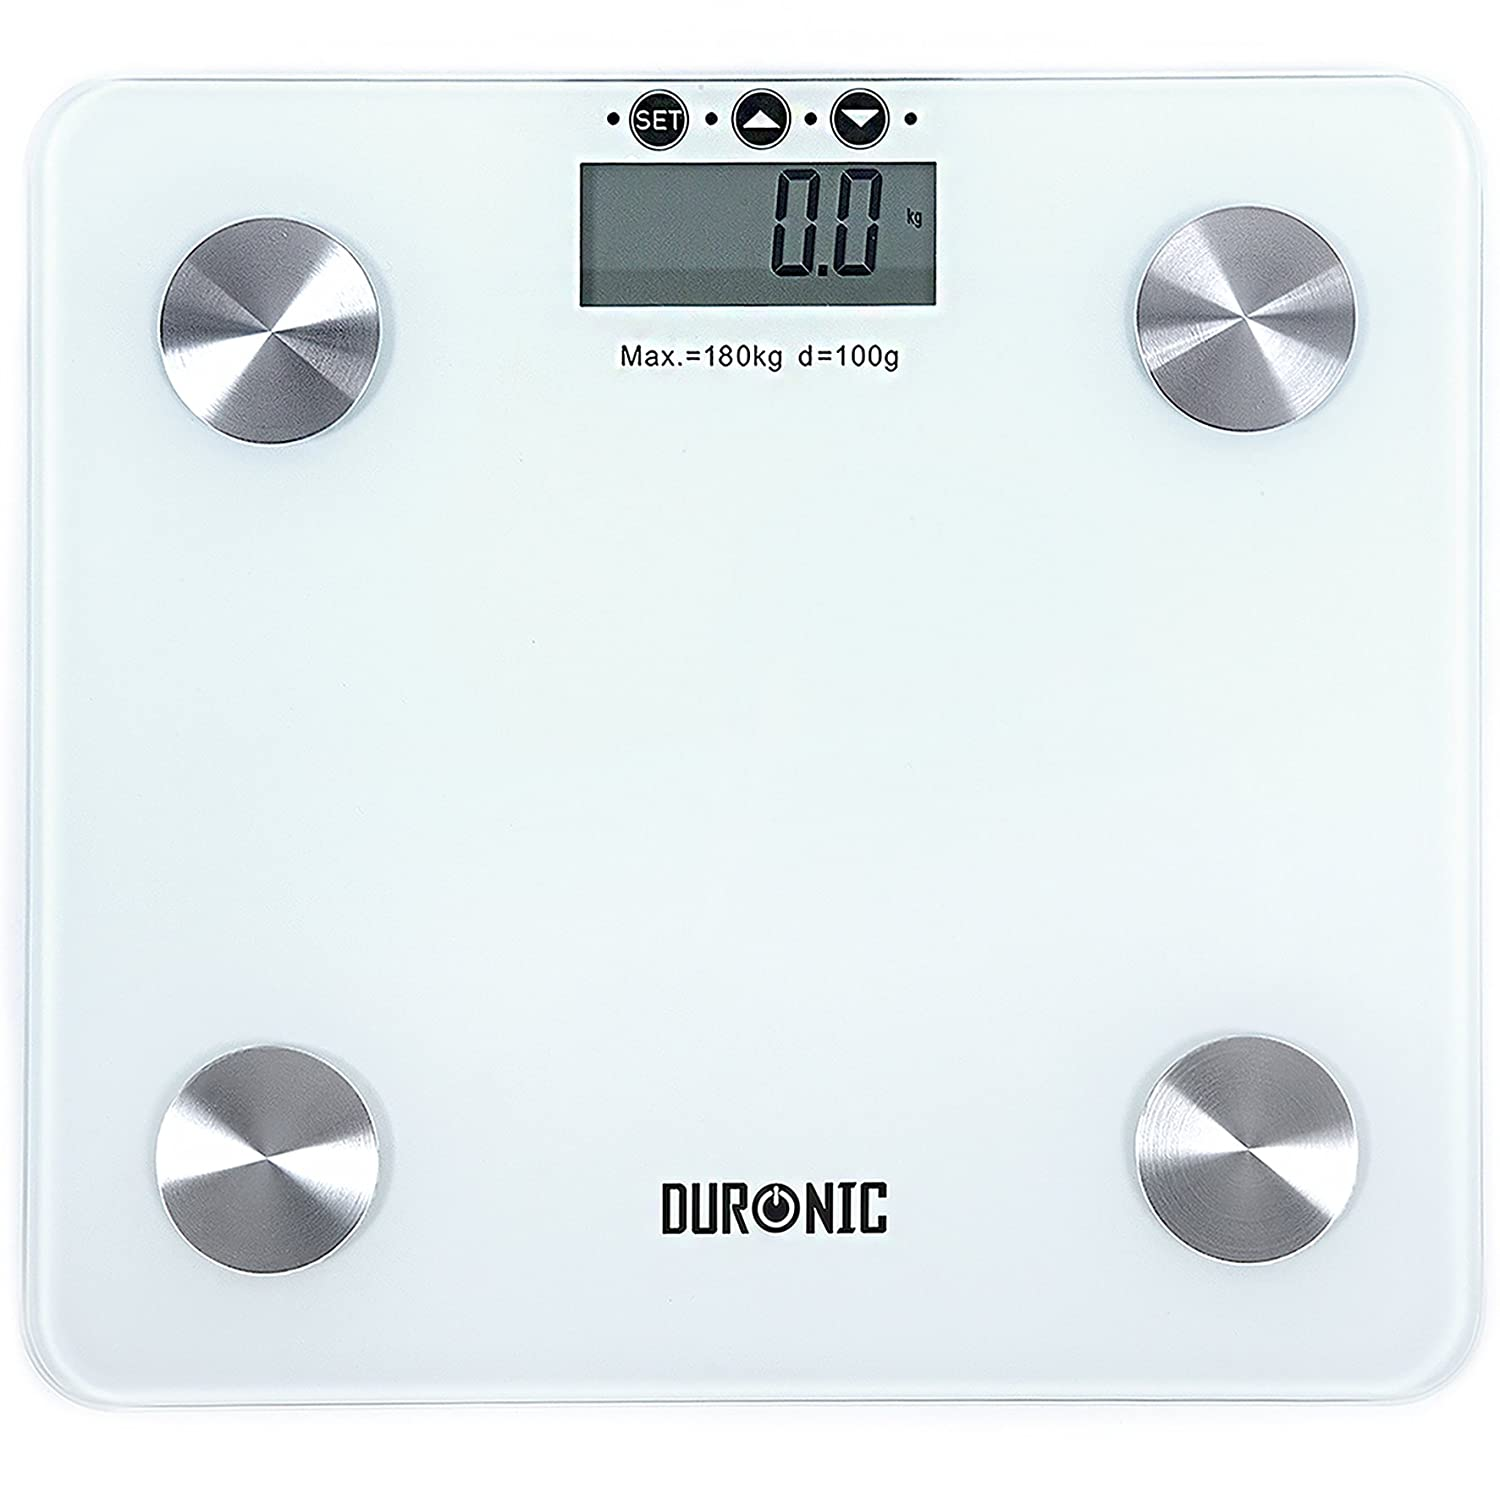 Bathroom Scales Body Analyser - Duronic bs301 touch sense body fat analyser 180kg electronic slim digital display black glass platform